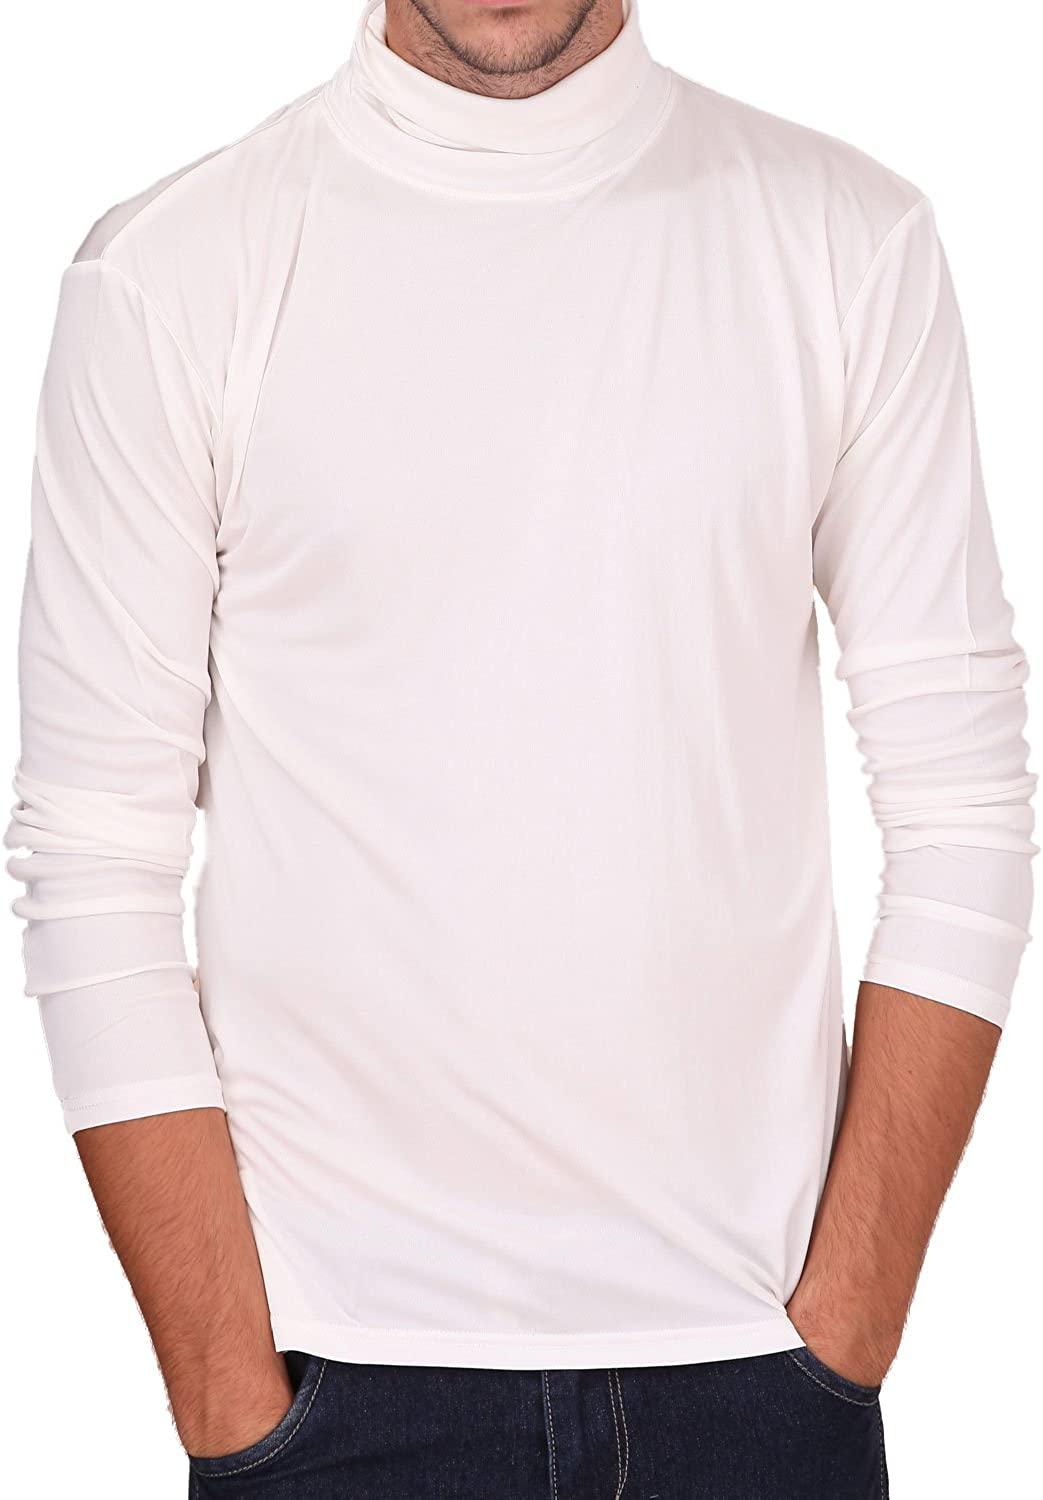 Paradise Silk Pure Silk Knit Mens Turtleneck Comfy Top at  Men's Clothing store